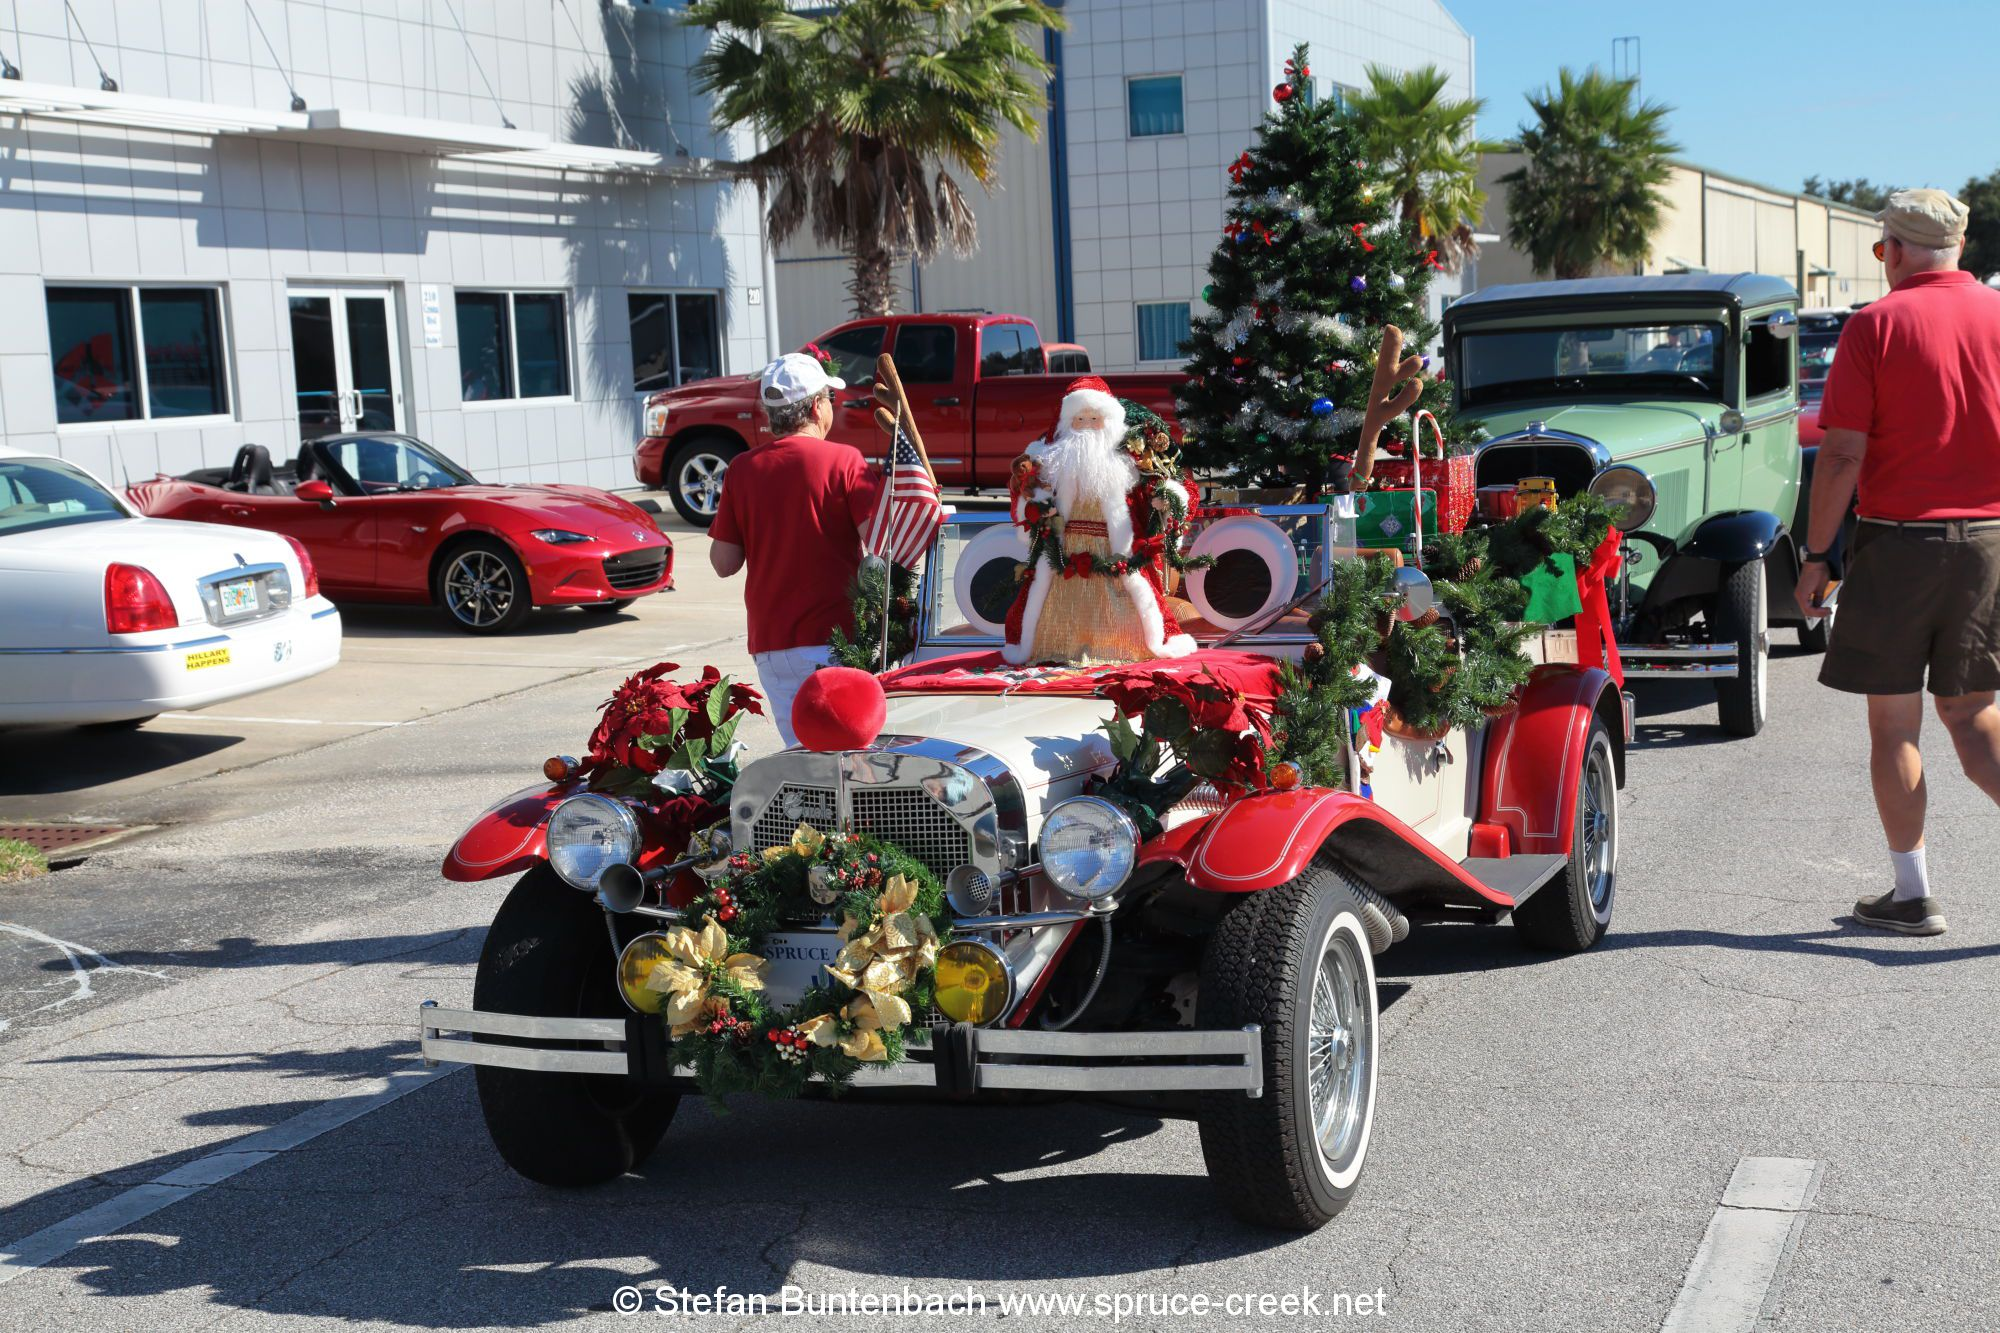 Spruce-Creek-Toyparade-2015- IMG_1132